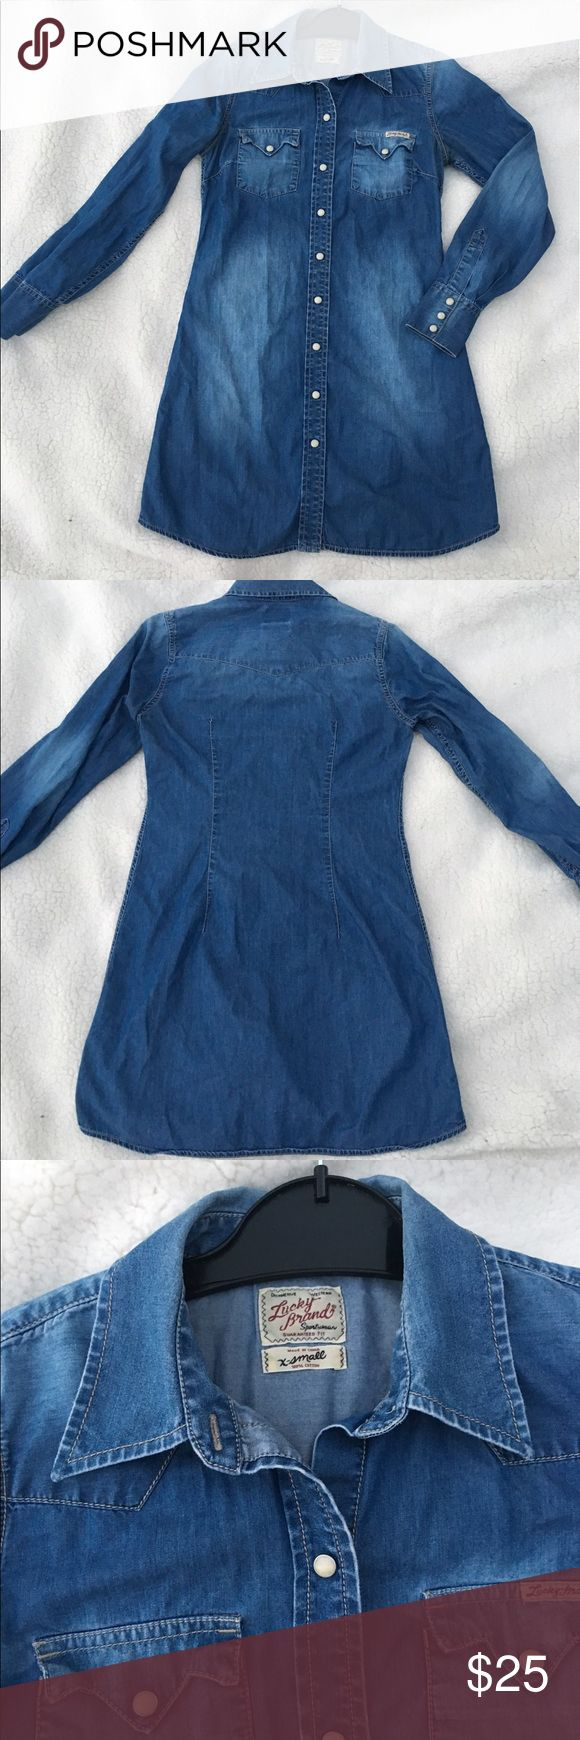 Lucky Brand Denim Dress XS, 100% cotton Lucky Brand Denim Long Sleeve Dress Size XS, western sportswear 100% cotton  Designer/Label - Lucky Brand  Size Type - Regular  Size - XS Style - Dress  Pattern - n.a Condition - Pre-Owned, EUC Material - 100% Cotton Origin - China  Sleeve Style - Long Sleeve Occasion - Casual, Cocktail, western, so versatile!  Lined - No  Wash - Machine Washable Or Dry Clean Lucky Brand Dresses Long Sleeve